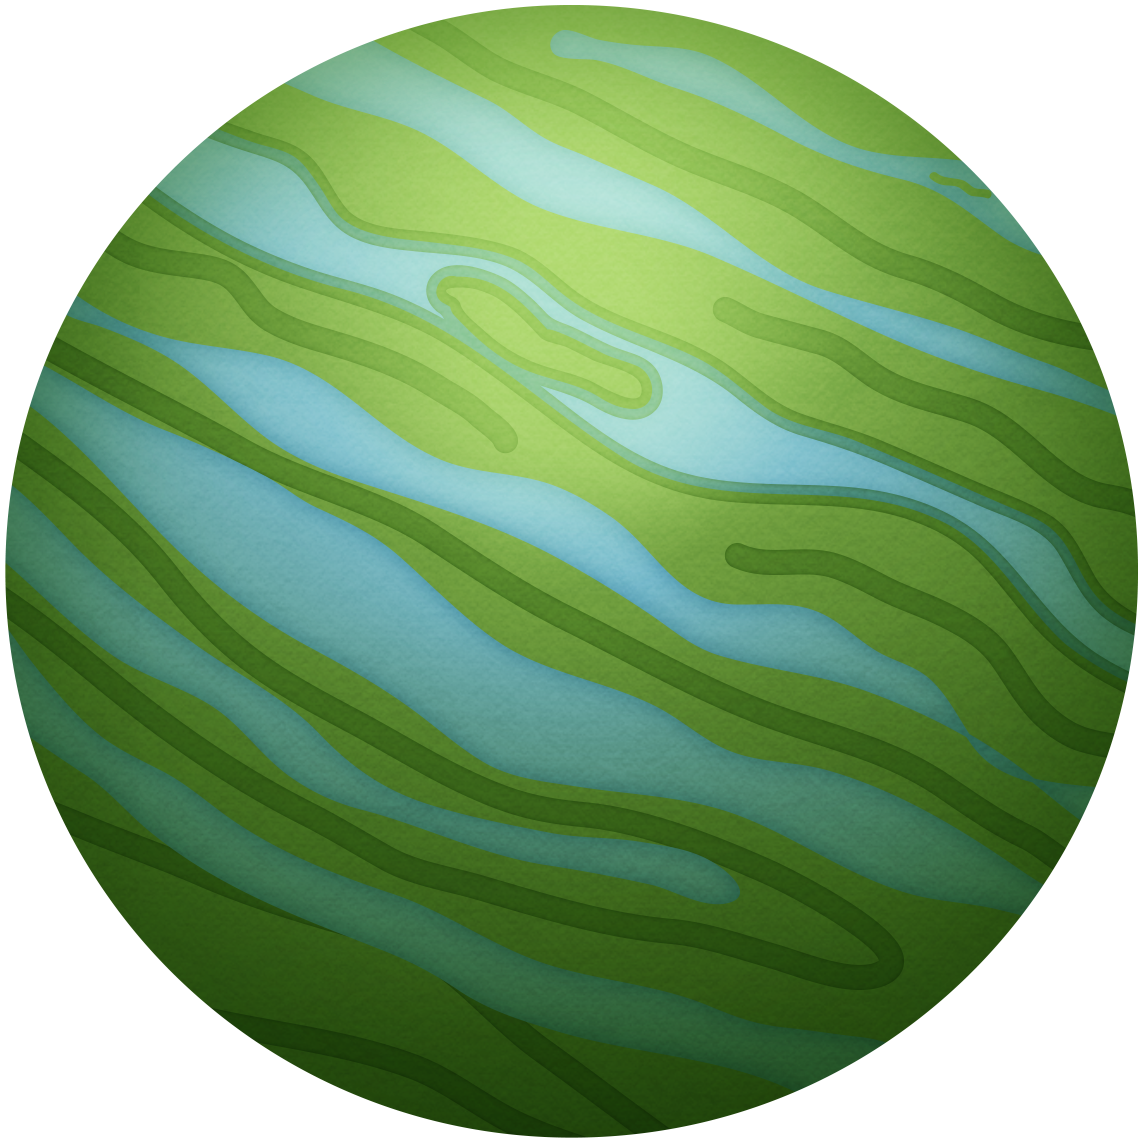 Planeten clipart spaceclip. Green planet outer space